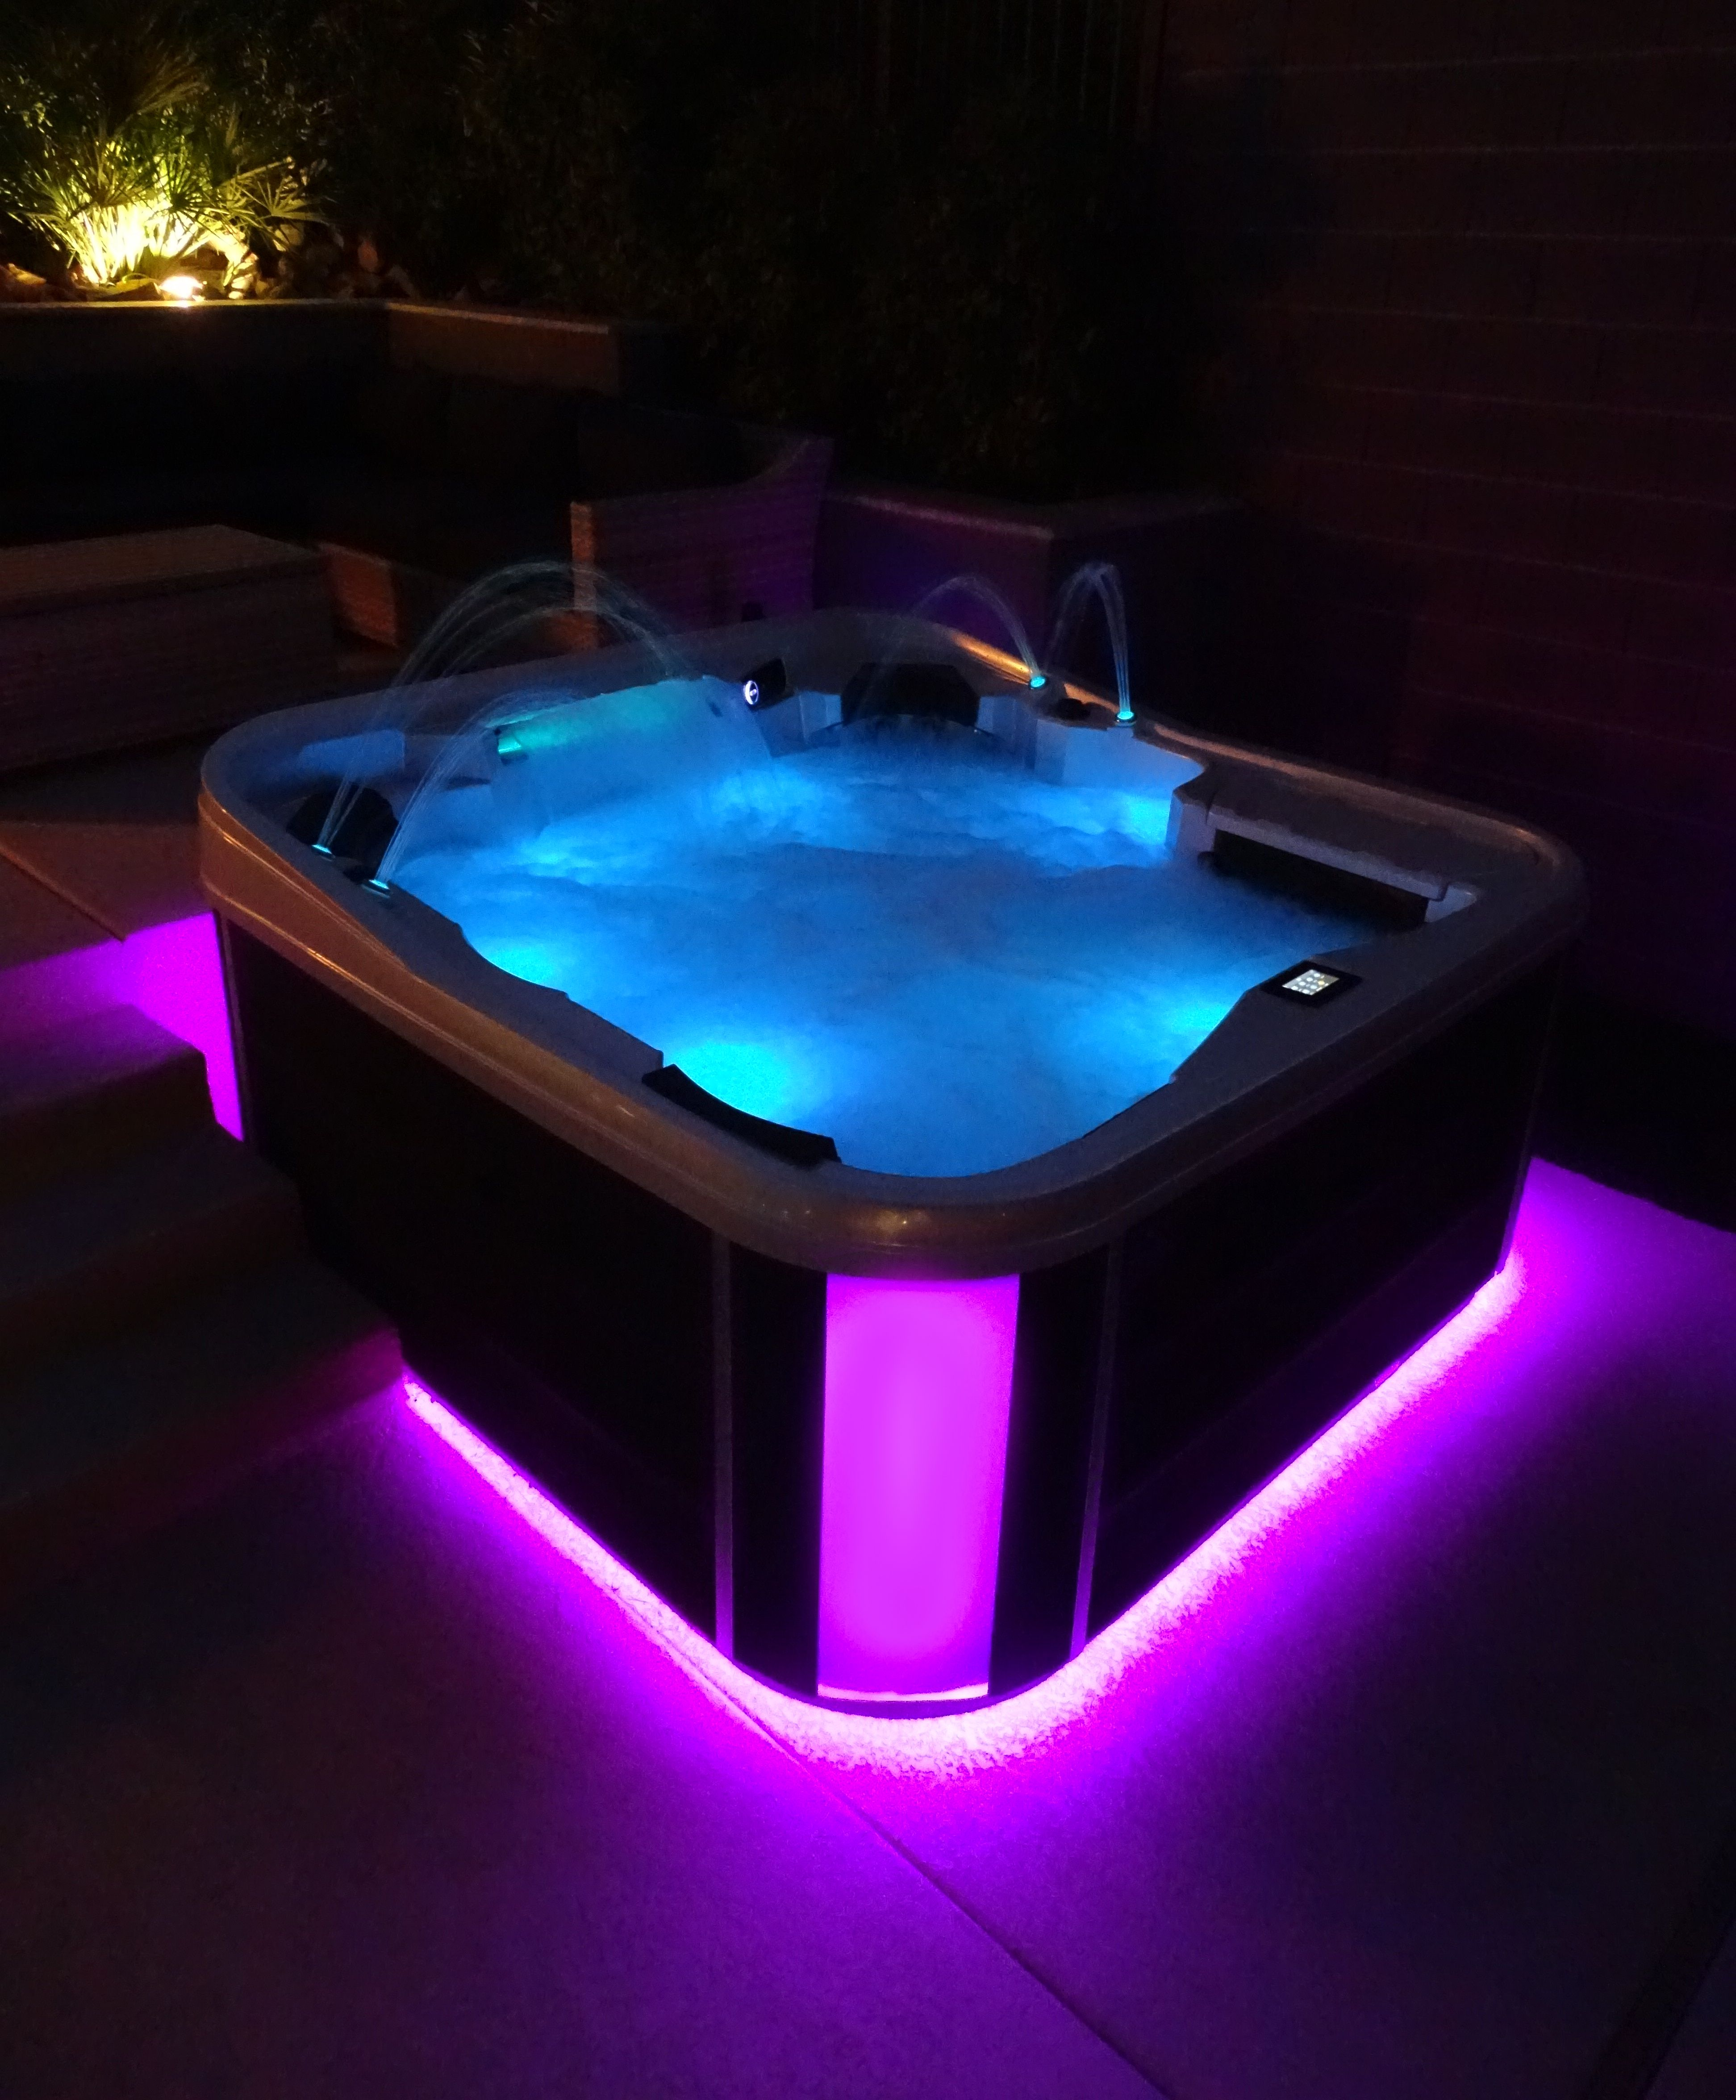 25 Outdoor Led Lighting Ideas In 2021 Artesian Led Outdoor Lighting Spa